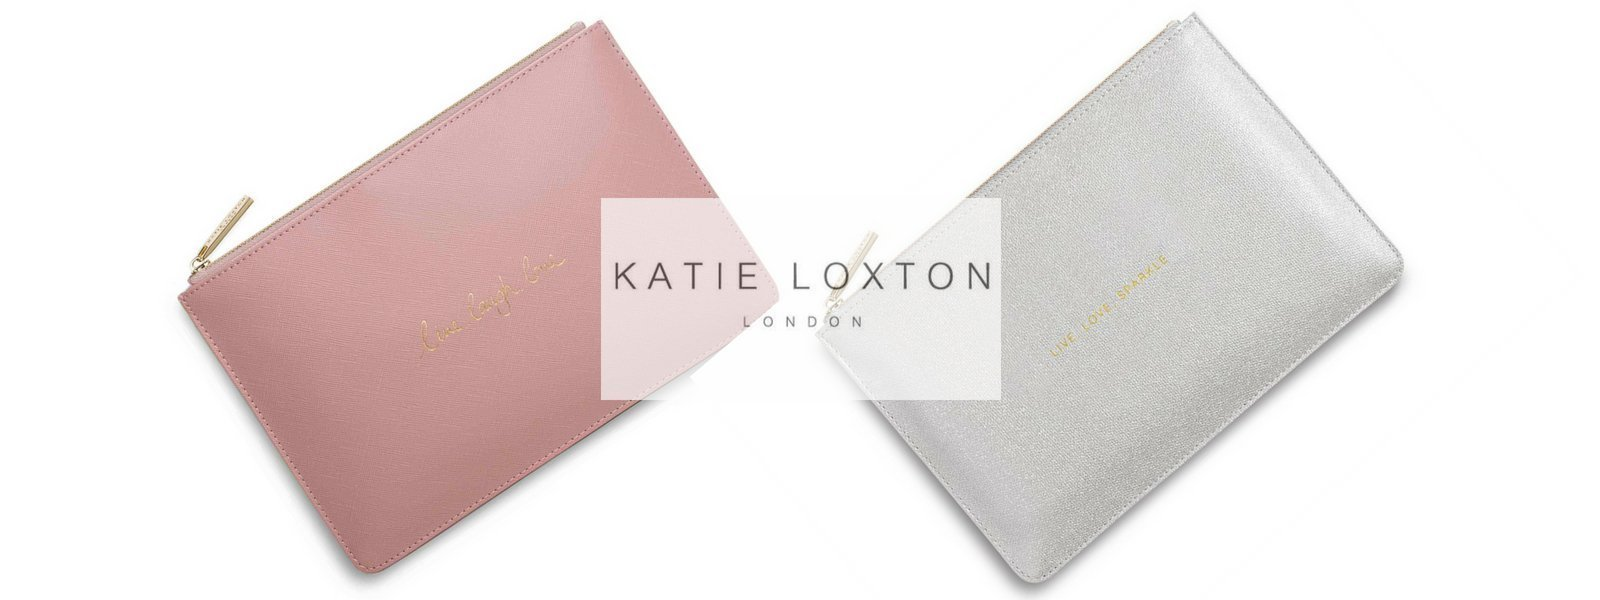 KATIE LOXTON MUST HAVES!